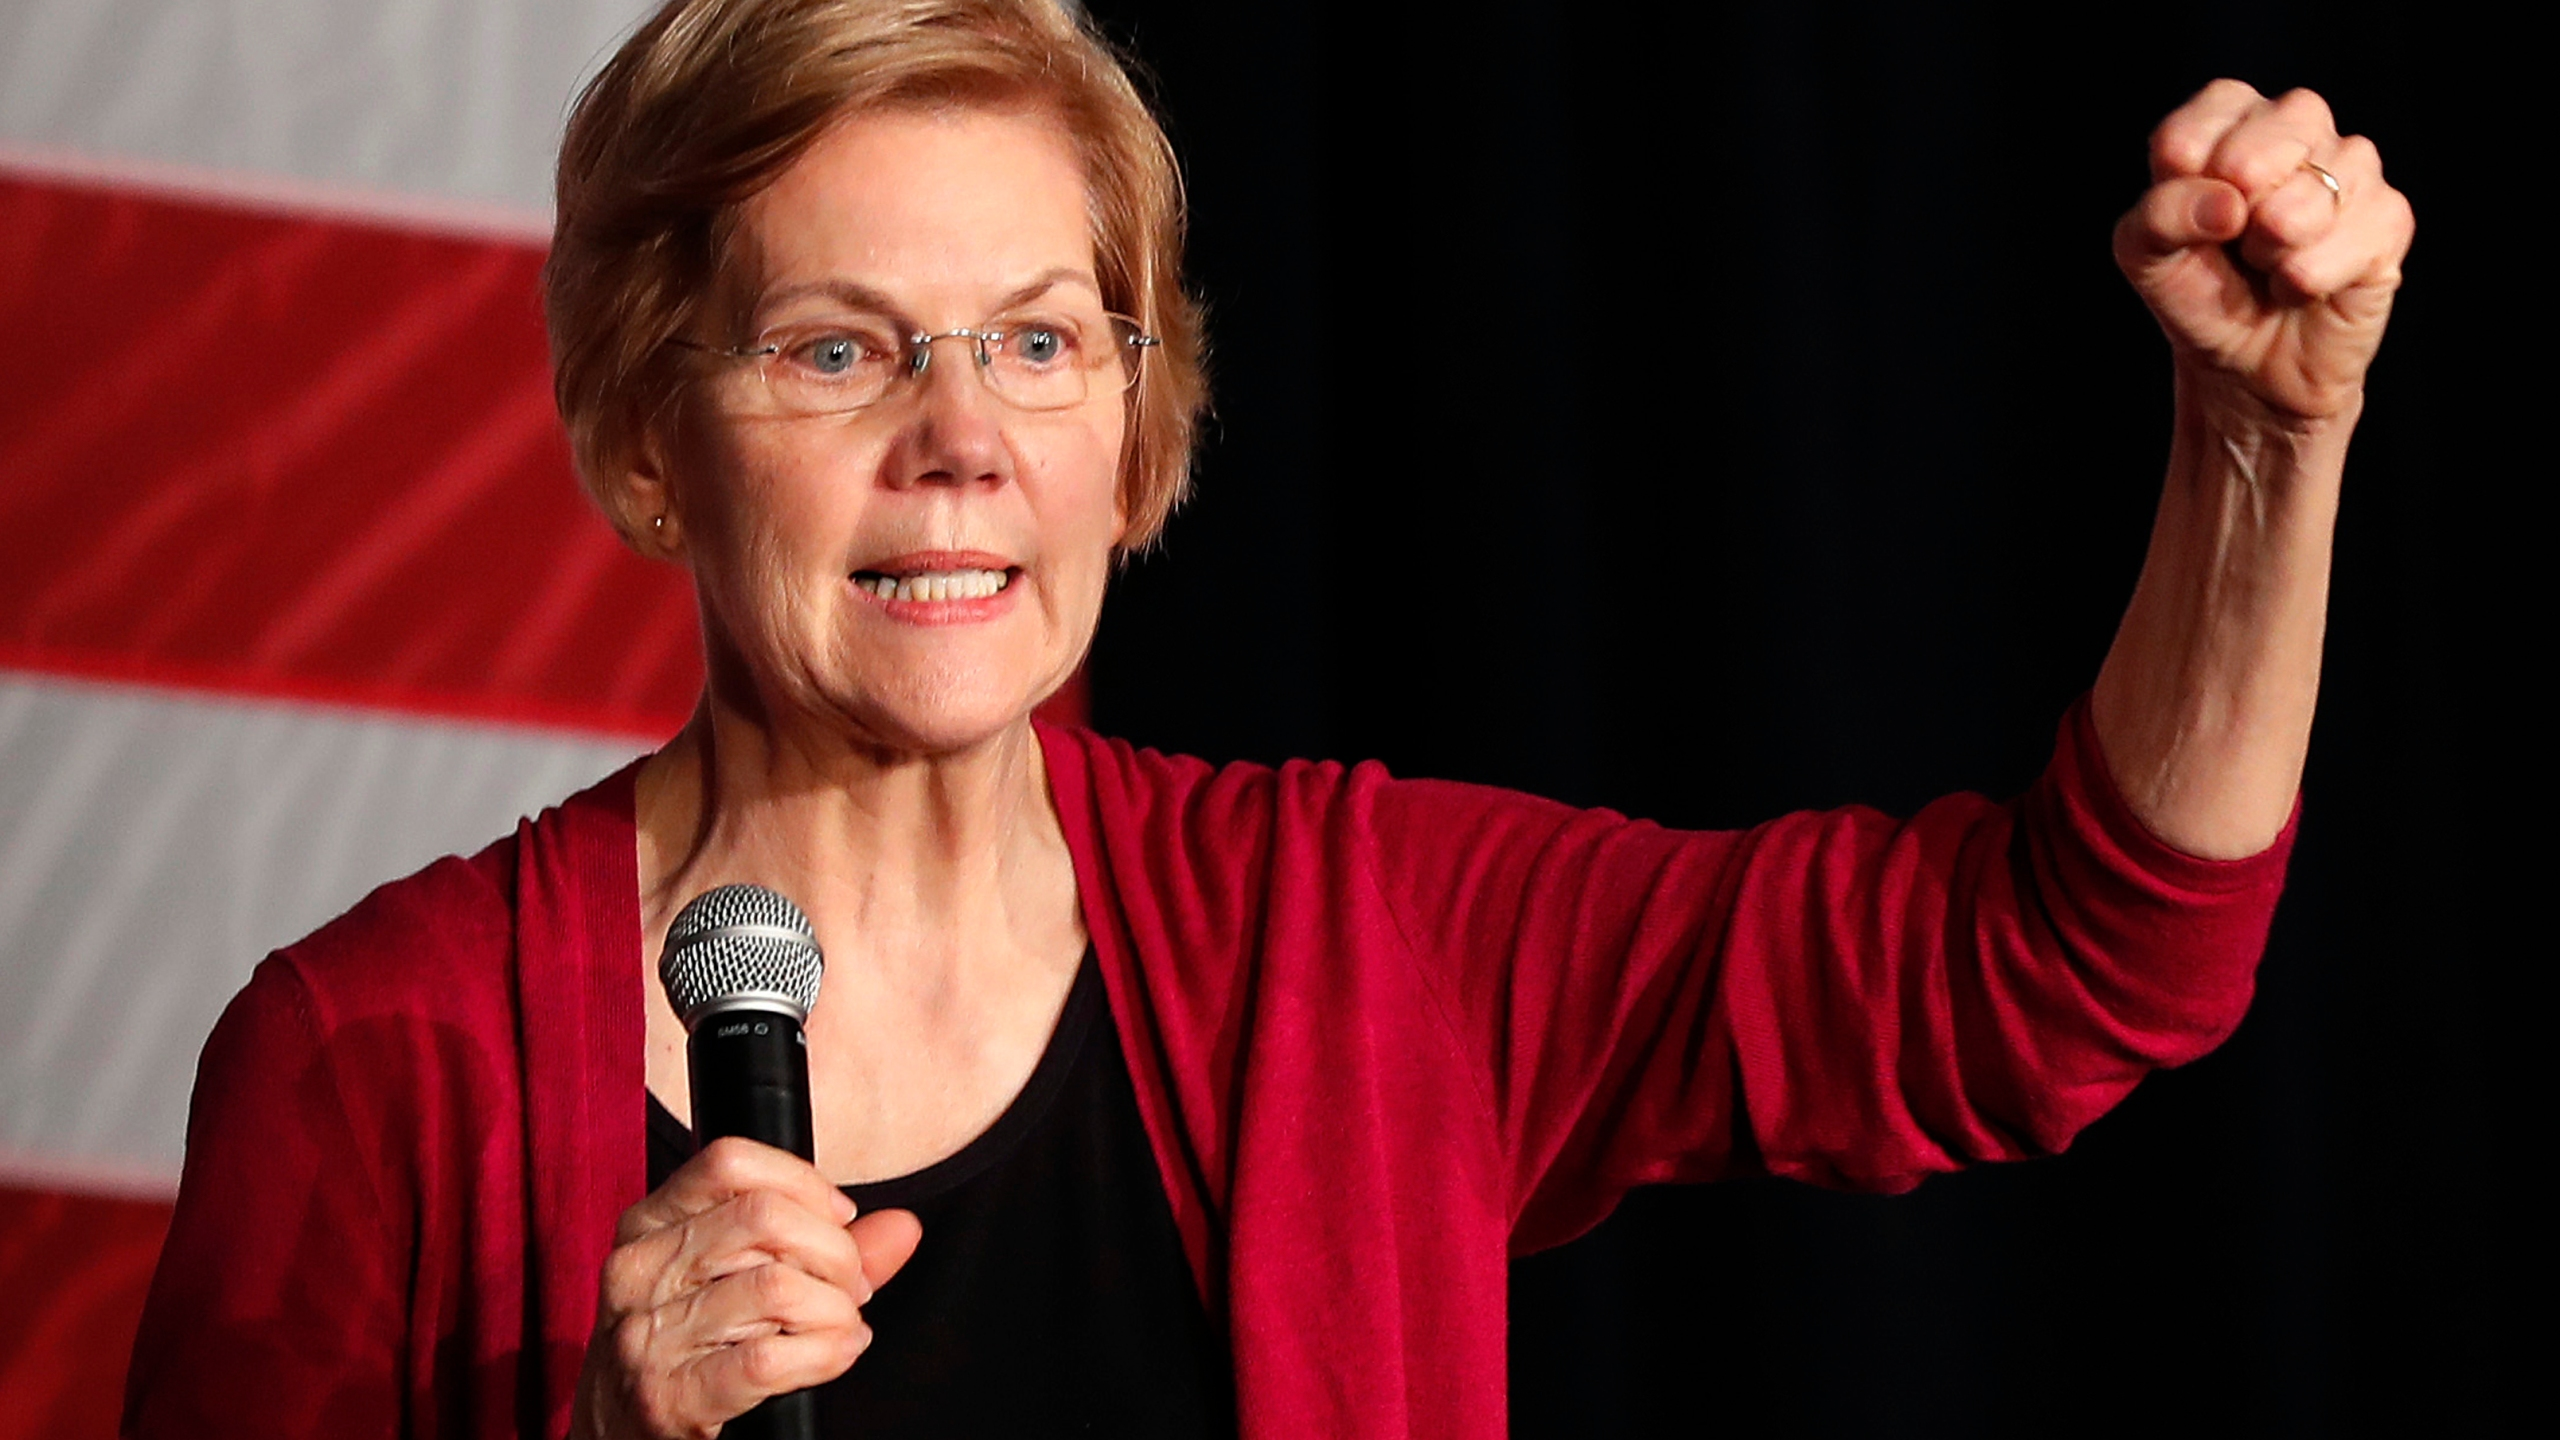 Election_2020_Warren_06749-159532.jpg02828787